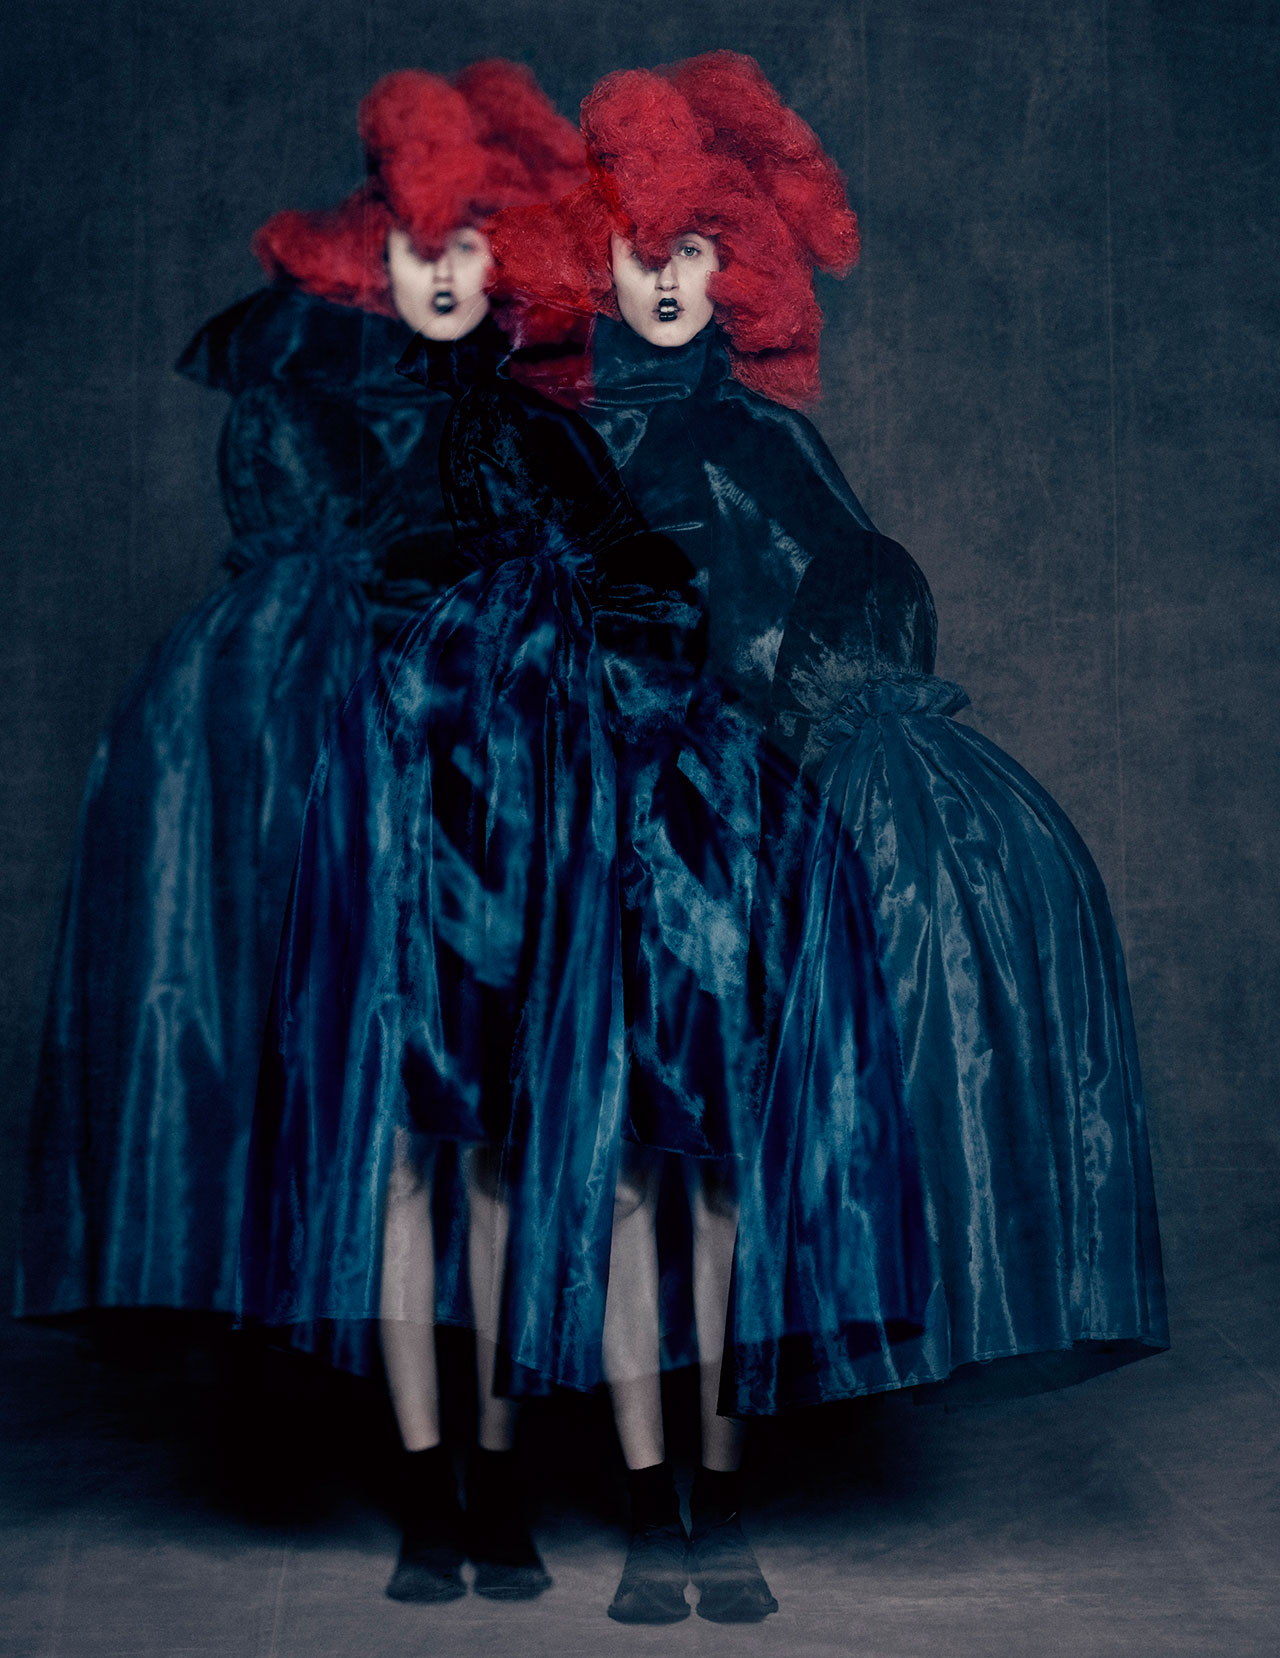 Rei Kawakubo for Comme des Garçons. Blue Witch, spring/summer 2016; Courtesy of Comme des Garçons. Photograph by © Paolo Roversi; Courtesy of The Metropolitan Museum of Art.